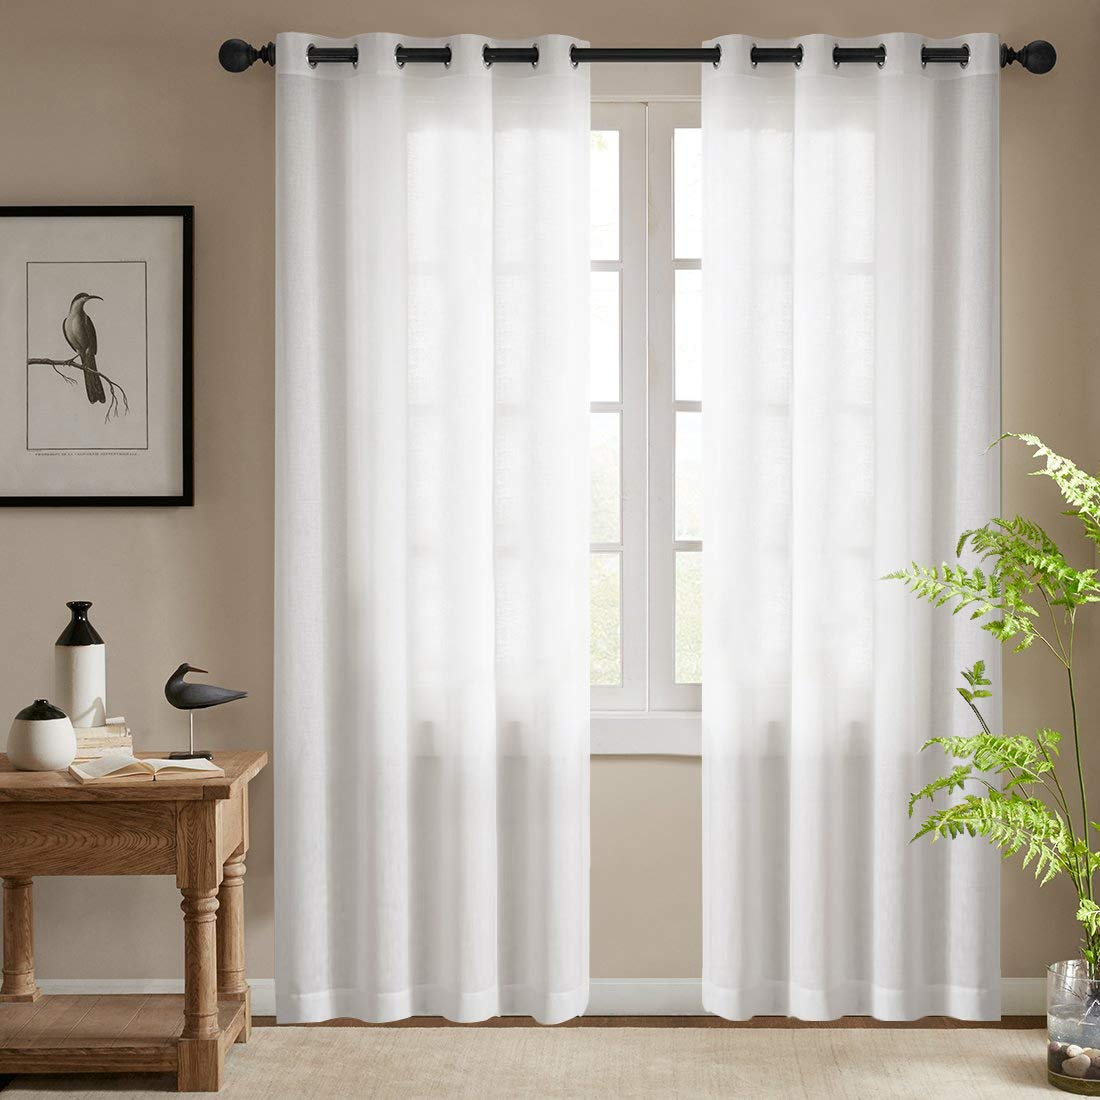 Semi Sheer White Curtains for Bedroom Window Curtains 84 Inches Long Grommet Top Casual Weave Textured Living Room Window Treatments (2 Panels, White)